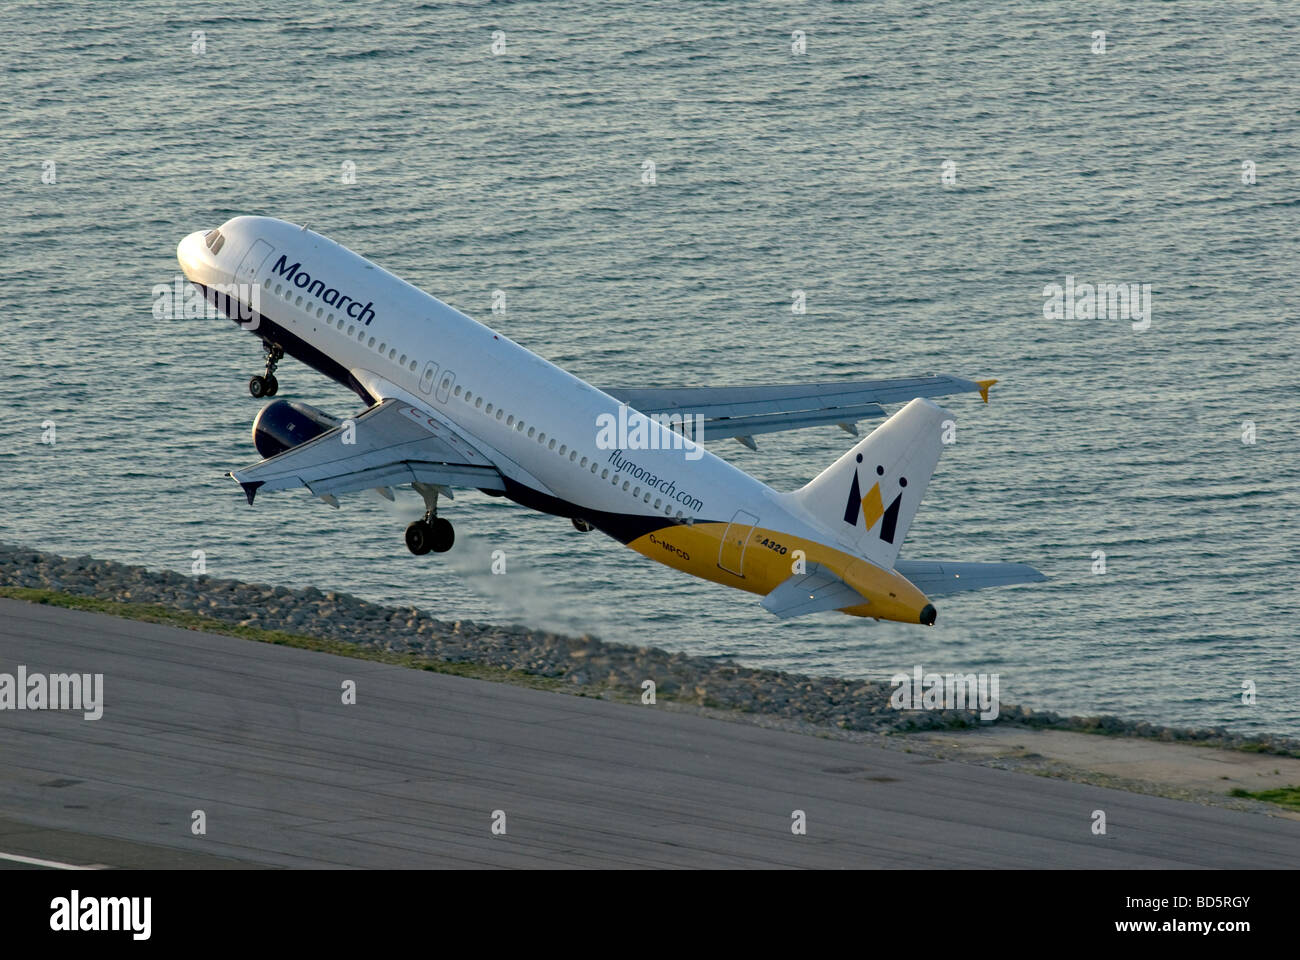 monarch airlines jet taking off from Gibraltar airport Stock Photo